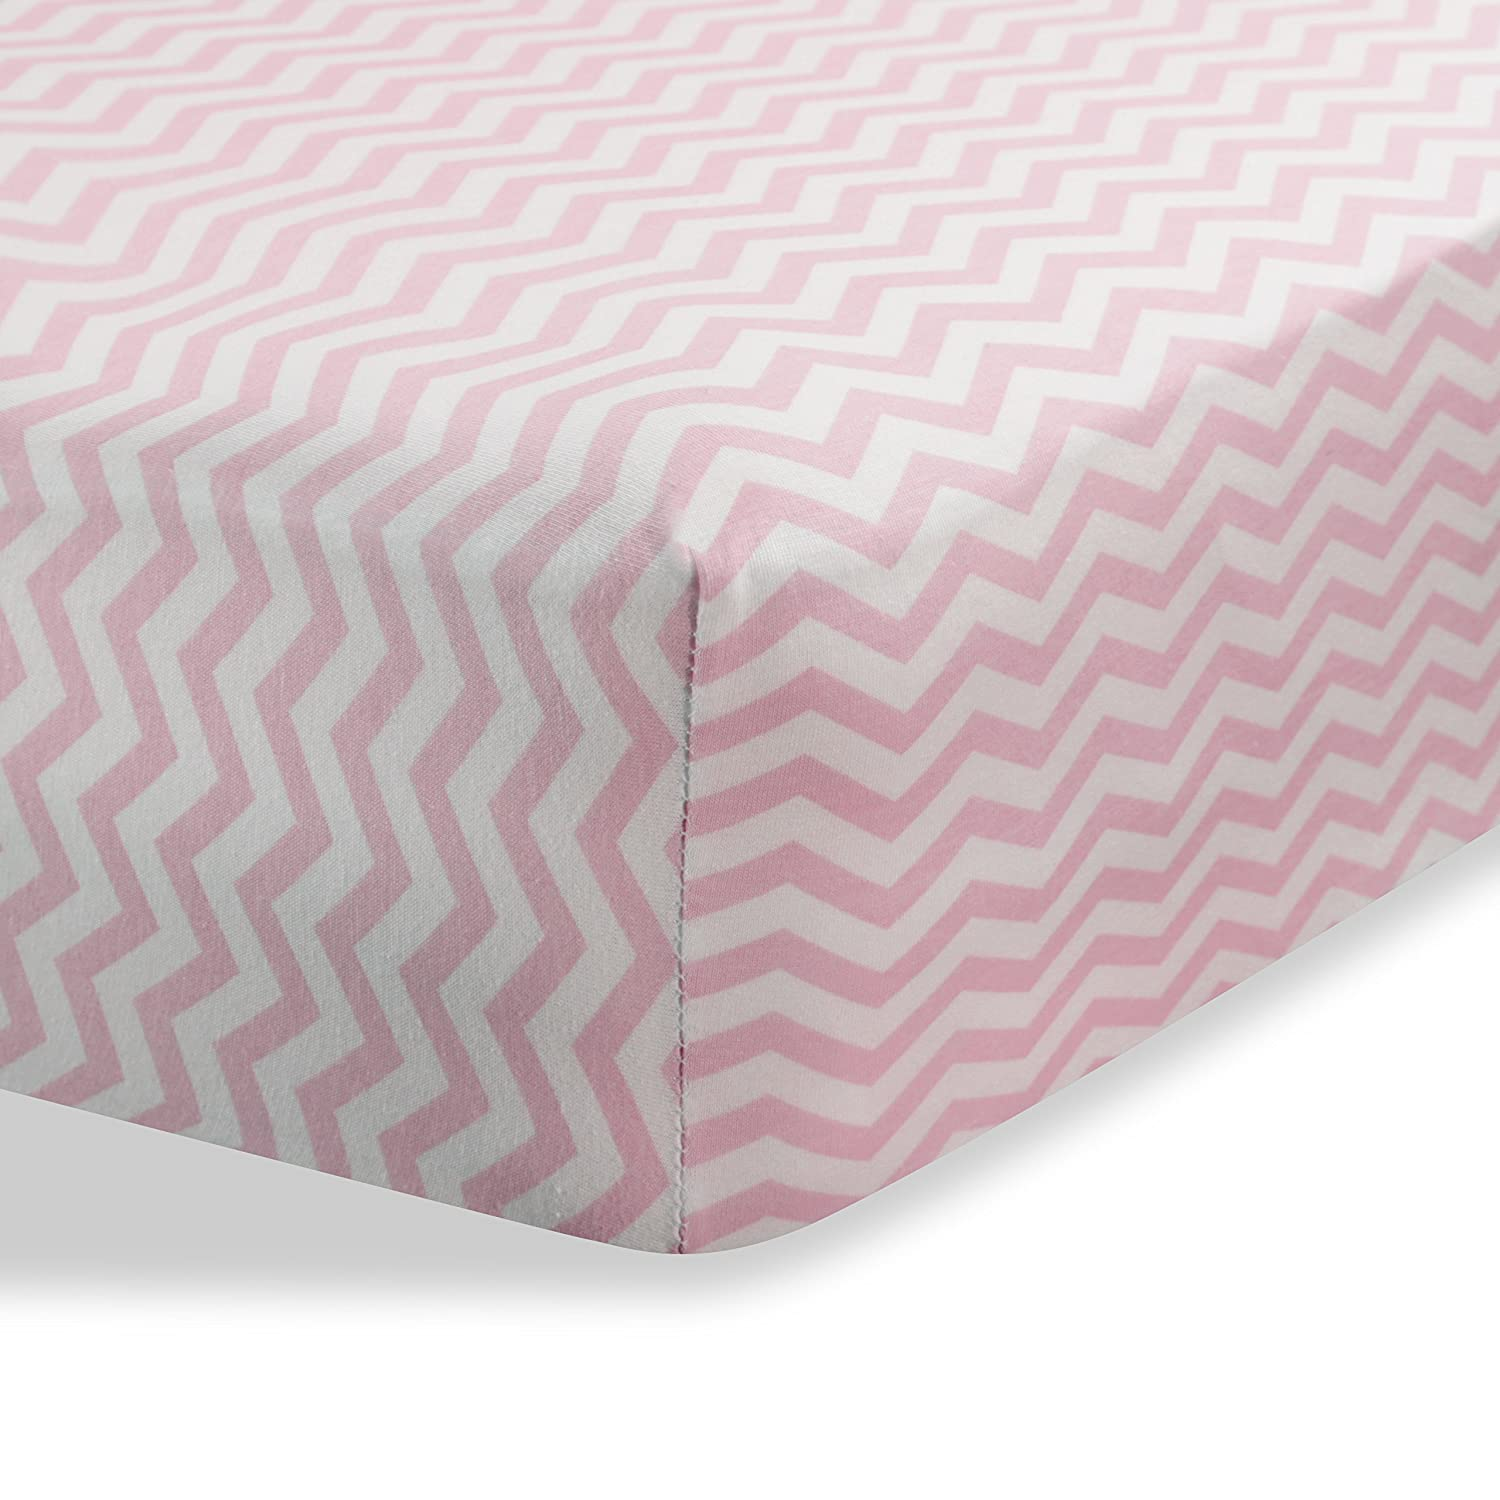 Bassinet sheets cradle sheets Abstract bassinet sheets cradle sheets for Baby / Infant Deep Fitted Soft Jersey Knit by Abstract 16